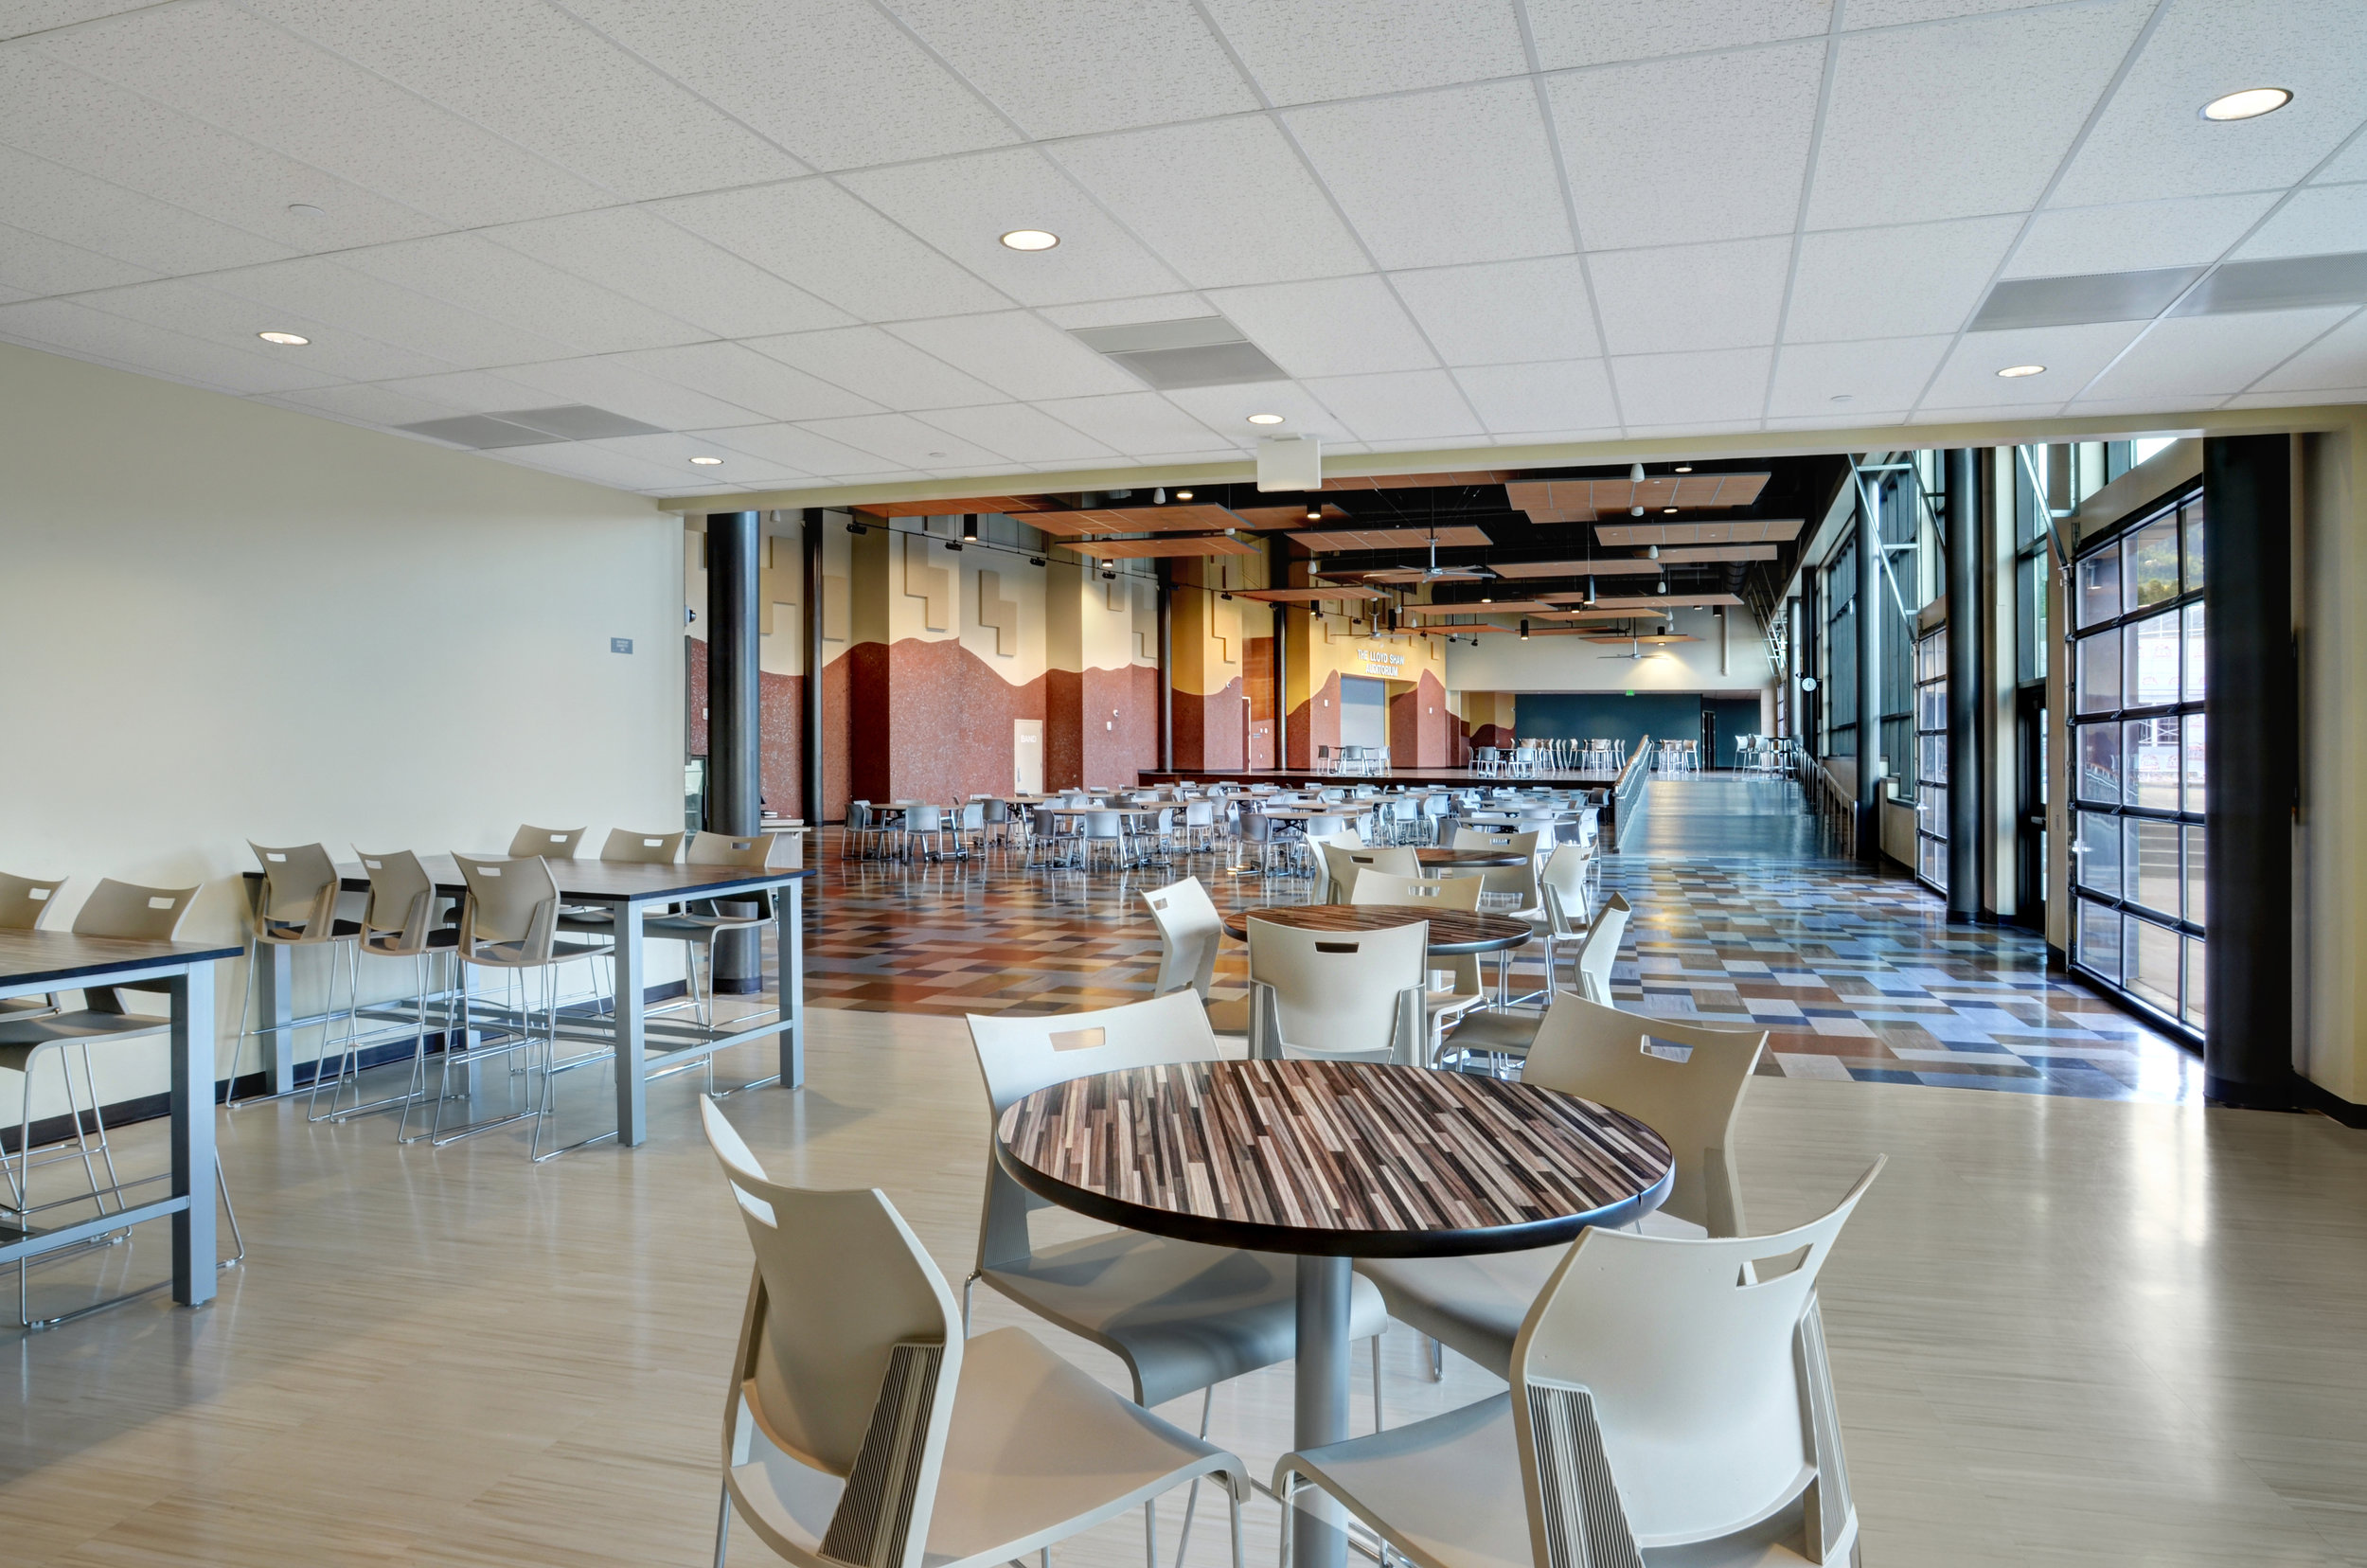 New student commons also features social study spaces on either end of the main area.